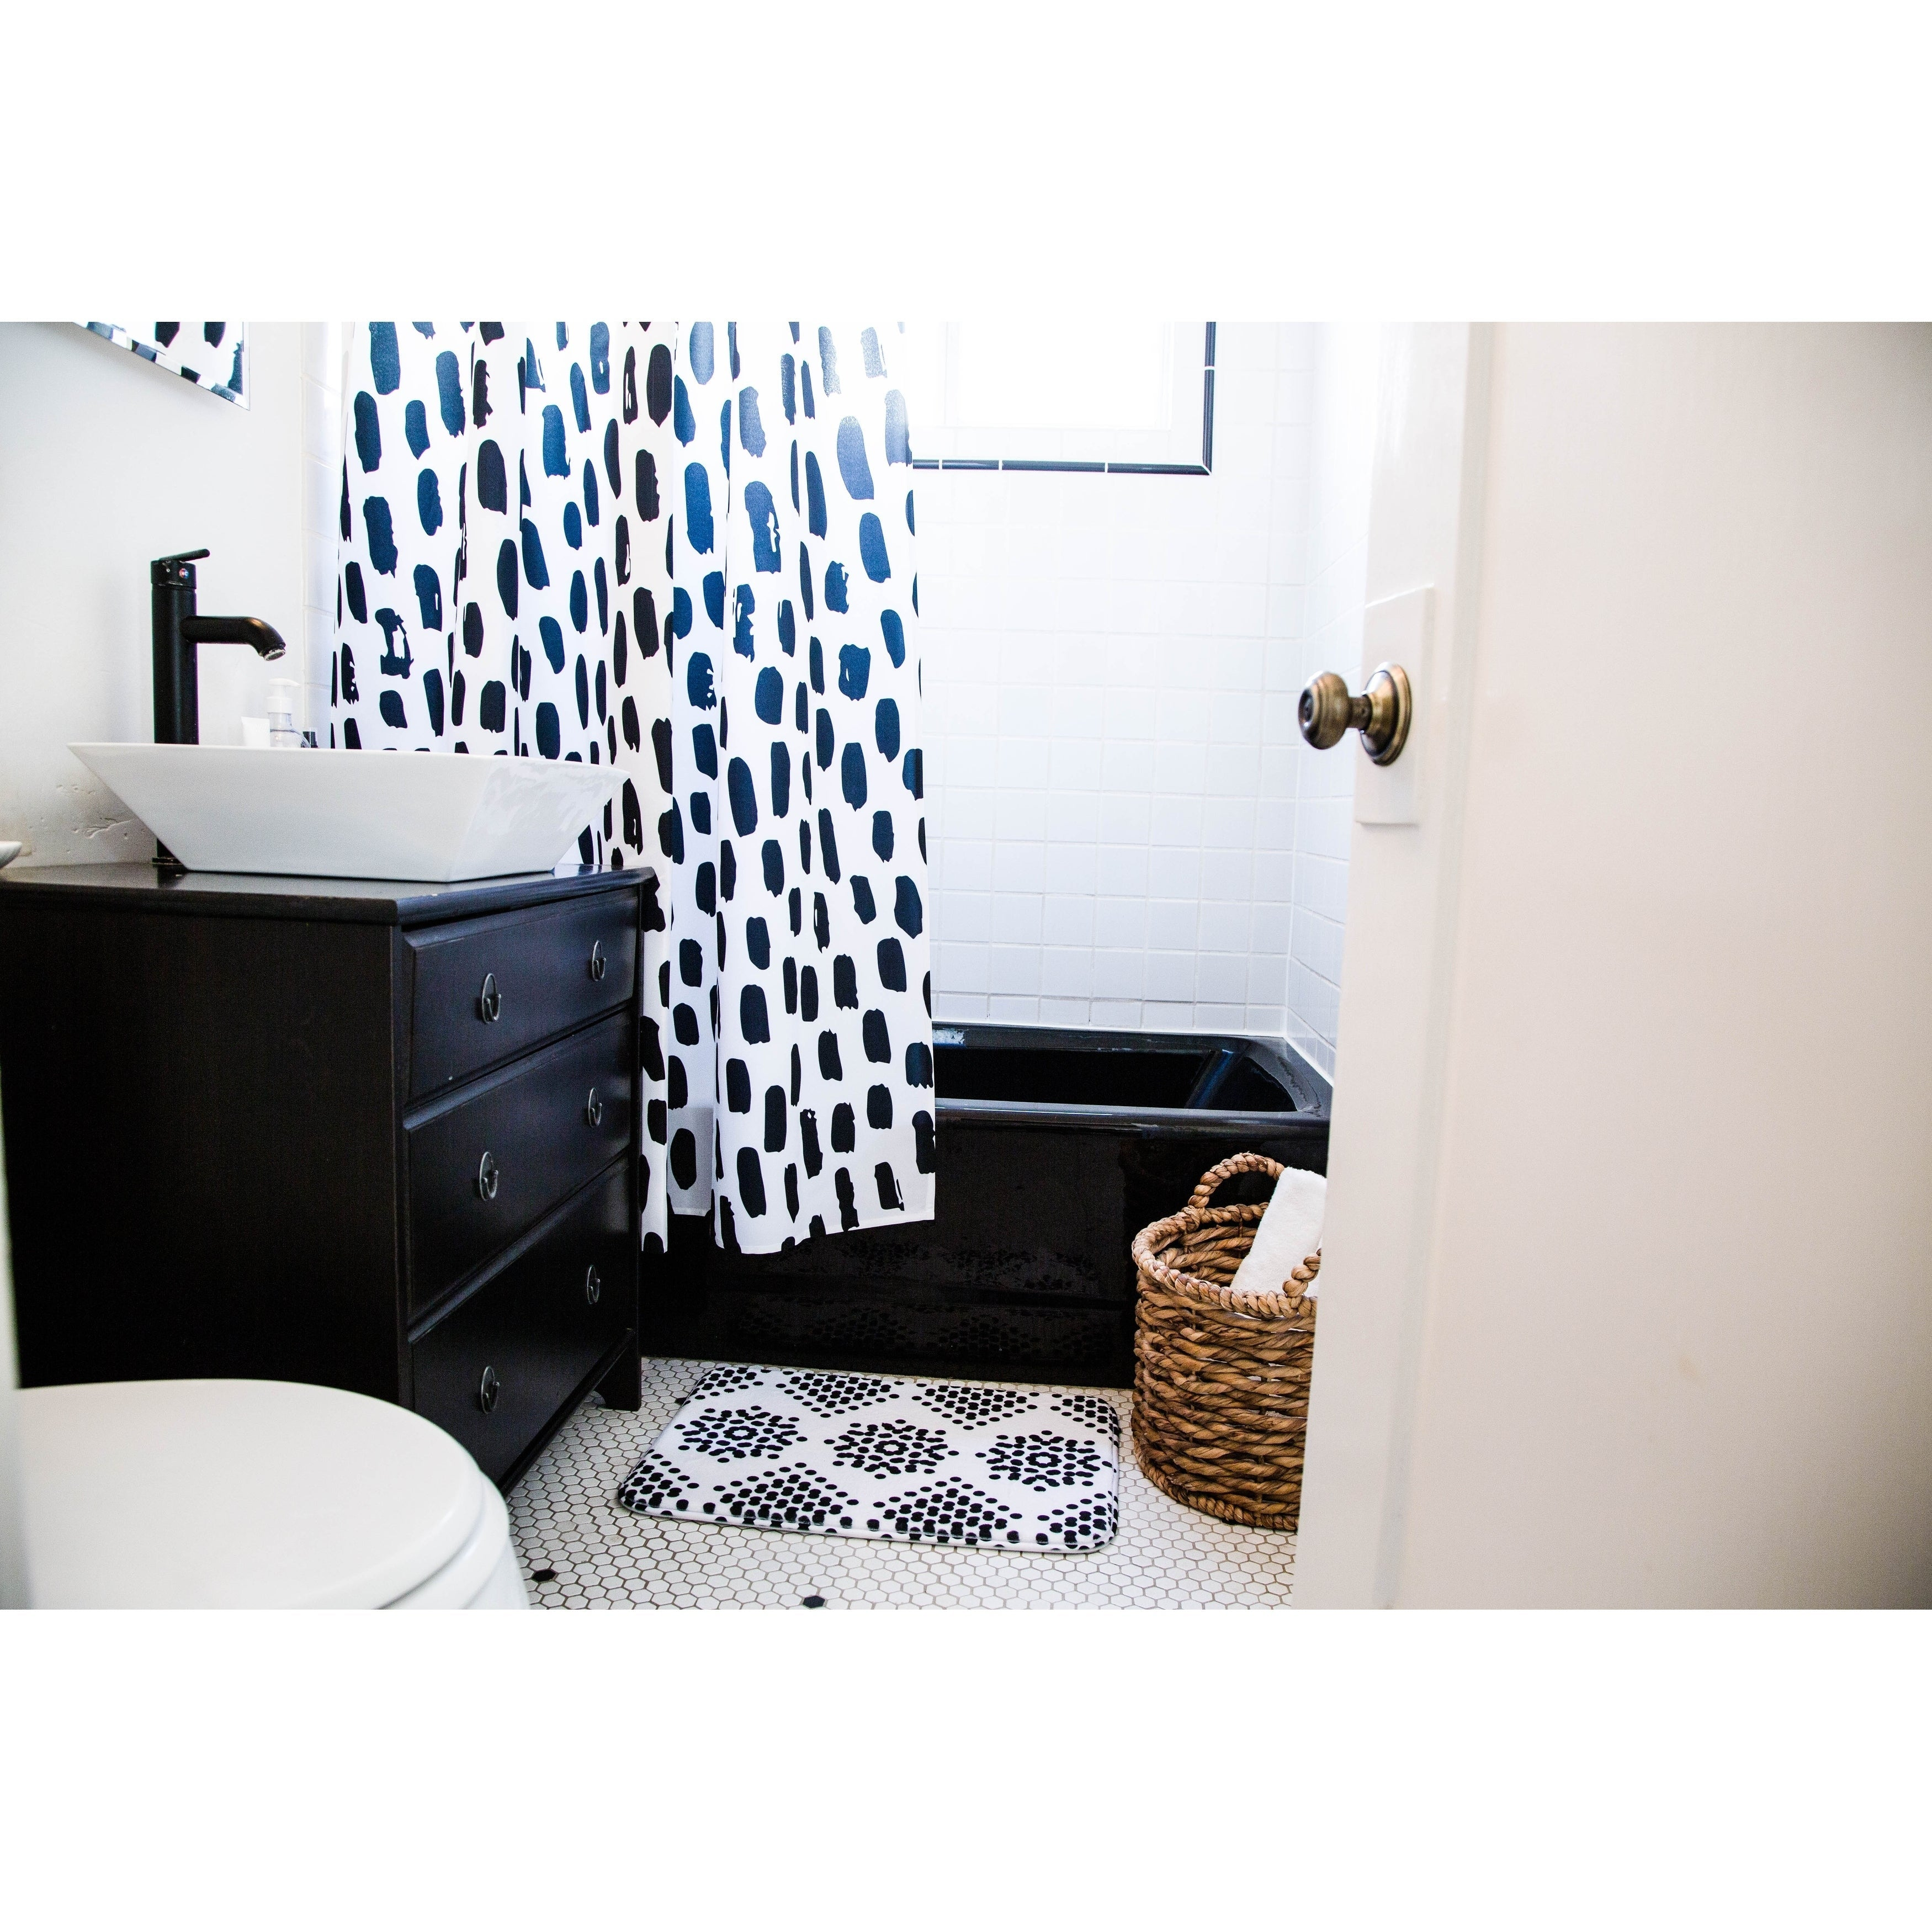 "Project M "" Splat White"" Black White Digital Shower Curtain Polyester - Diamond Home USA"